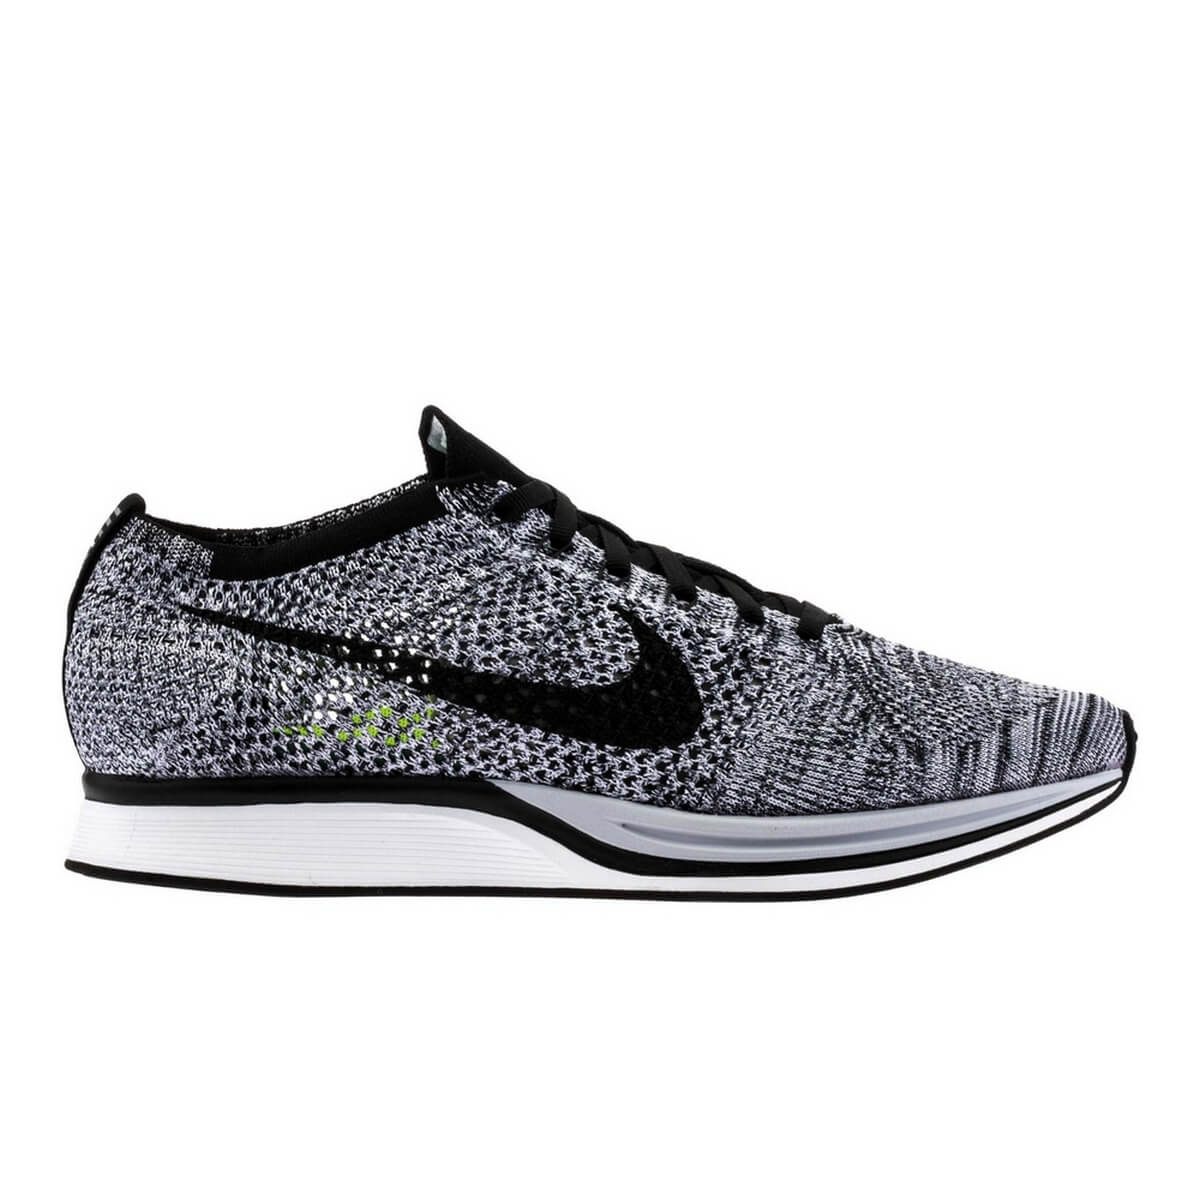 nike flyknit racer oreo 1 0 526628 101 pop need store. Black Bedroom Furniture Sets. Home Design Ideas